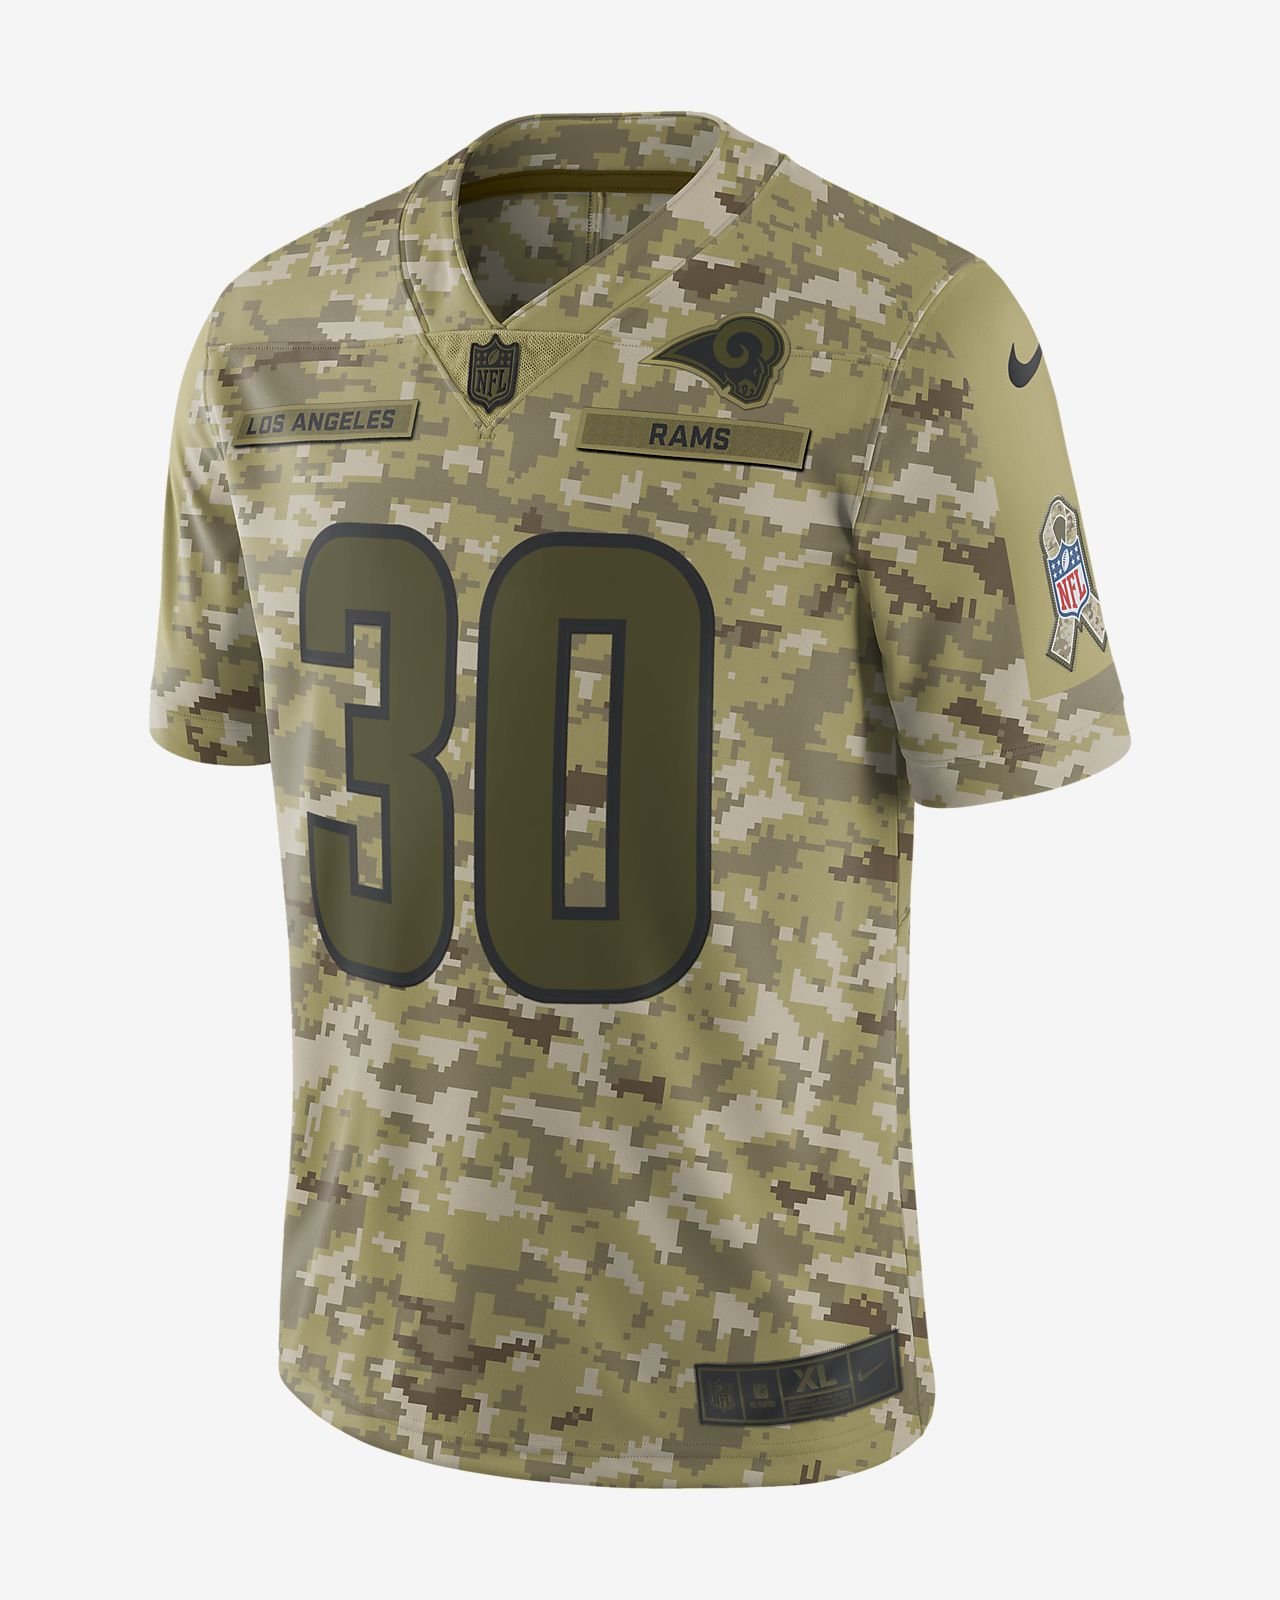 ... sweden nfl los angeles rams salute to service limited jersey todd  gurley mens football jersey 5f53f 466507f3f